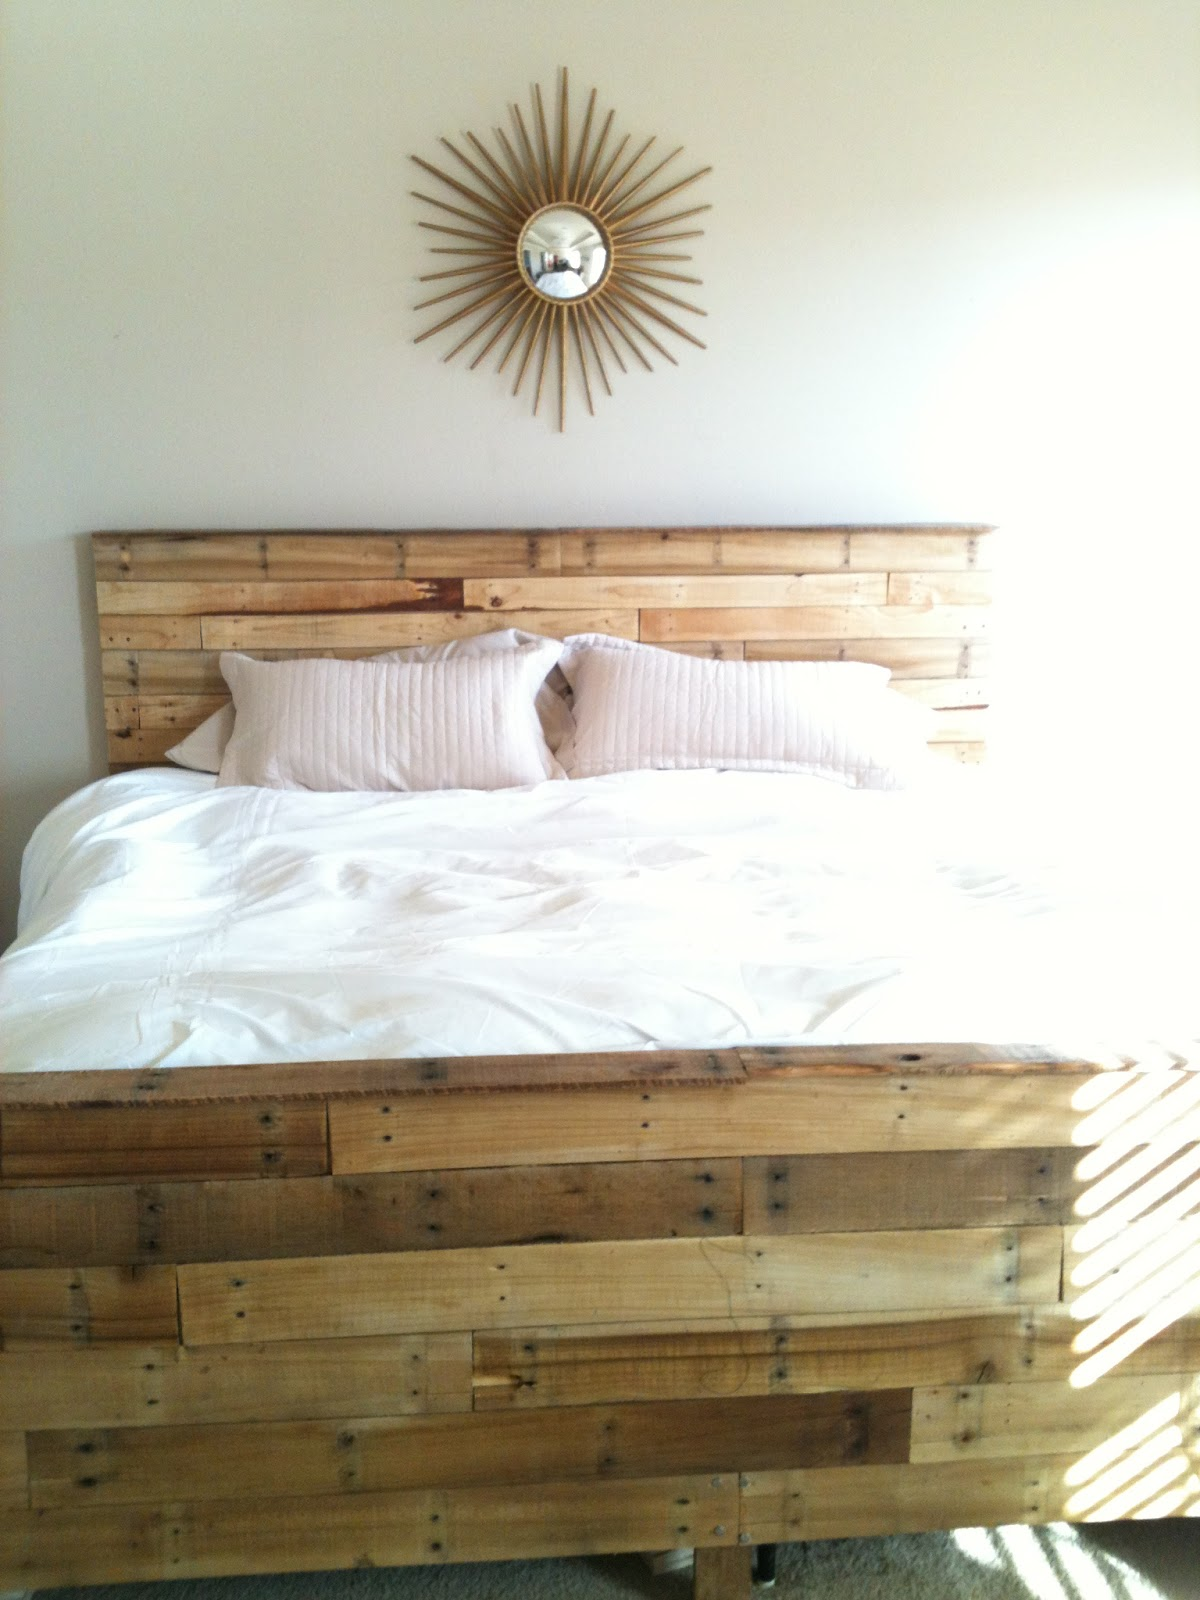 playing house: So, we made our bed out of pallets.